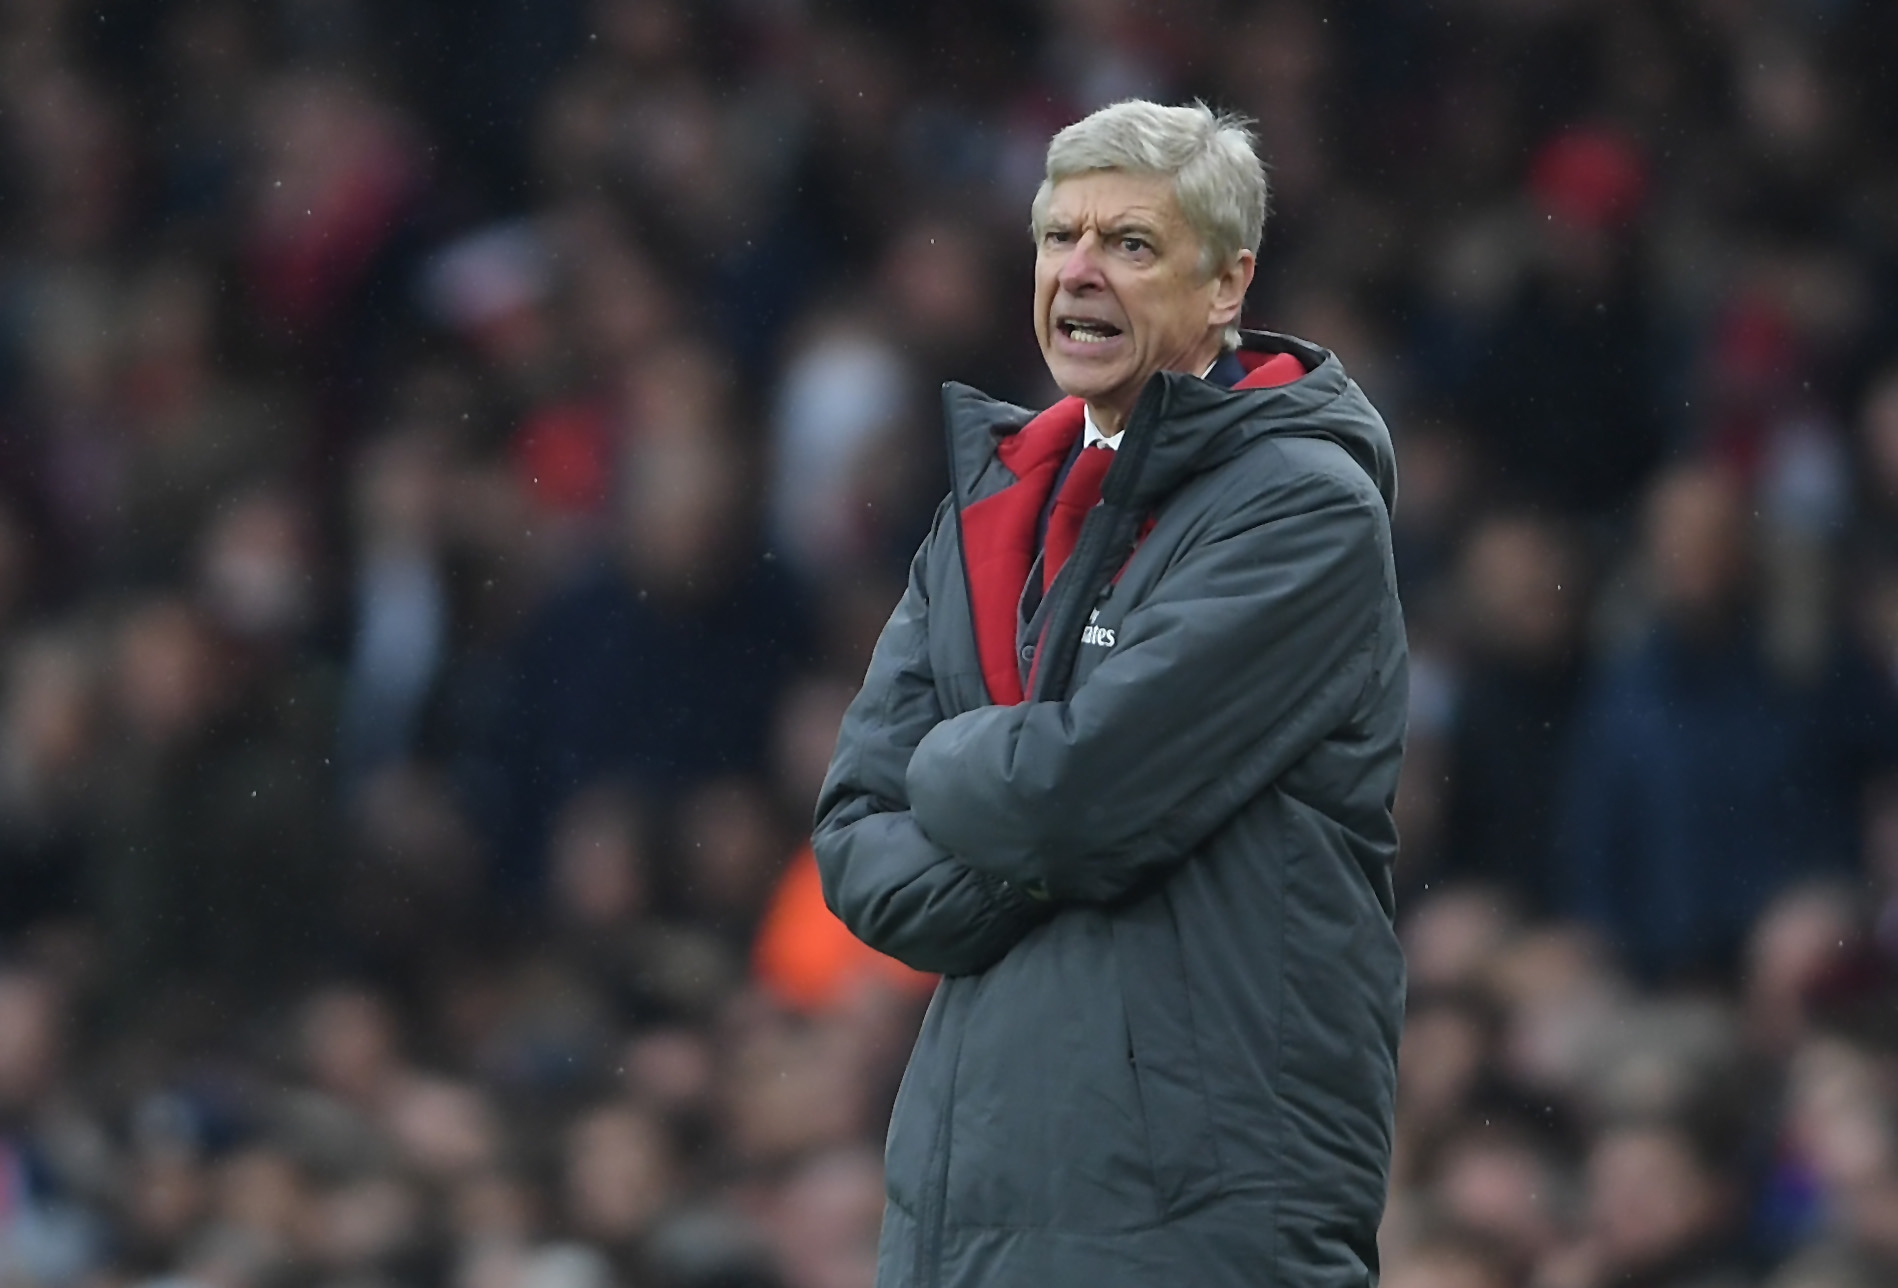 Arsenal boss Wenger confident Welbeck can shake injury woes and target Russian Federation